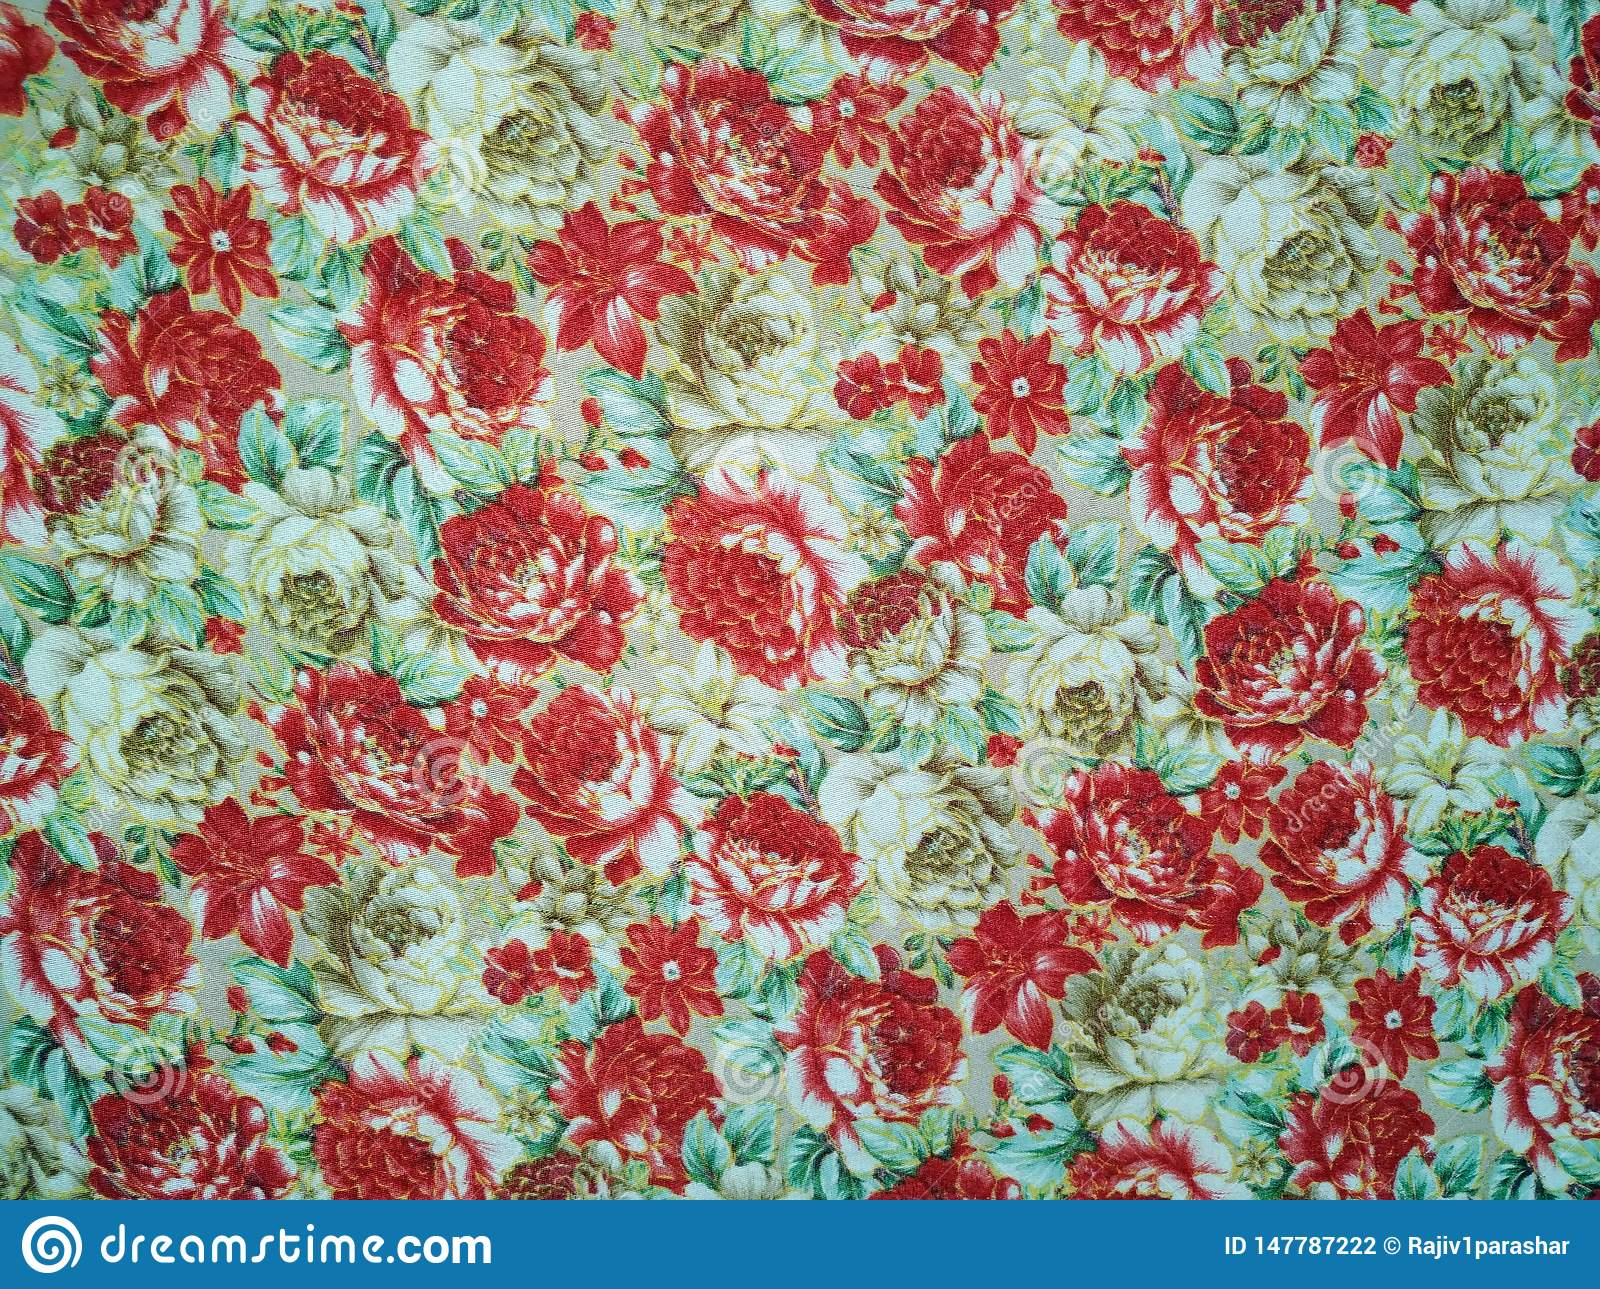 Roses pattern bunch of flowers, repeating print for fabric